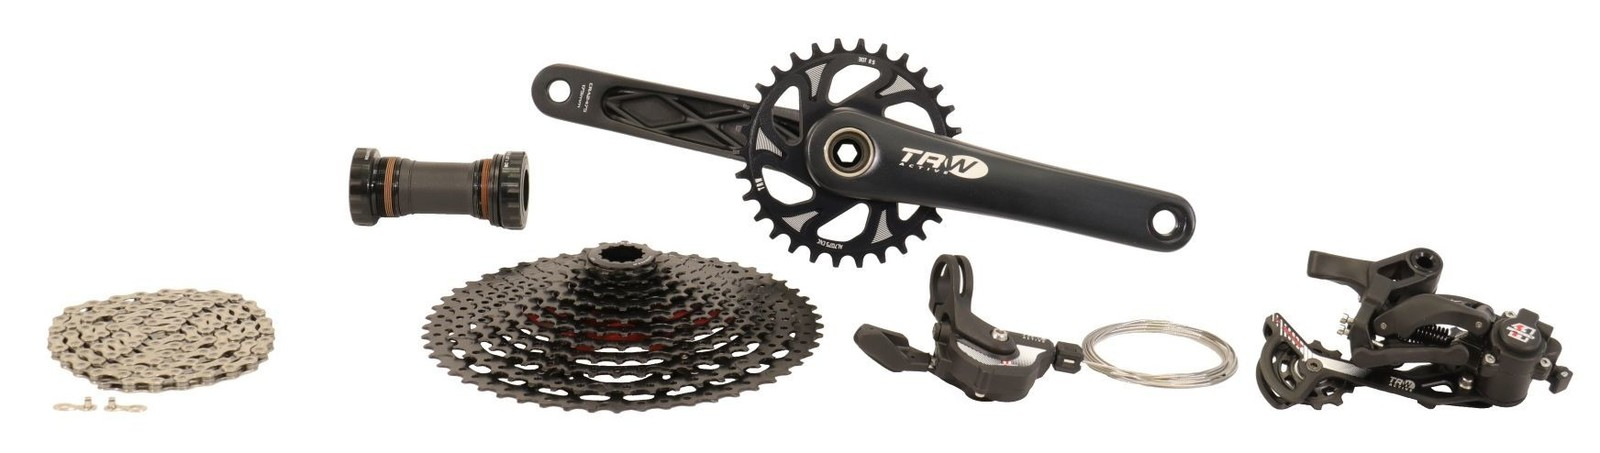 a008a2dc523 The 11-speed SRX drivetrain is based around a the classic Shimano freehub  standard, and as such it is limited to 11 teeth for the smallest cog on the  ...